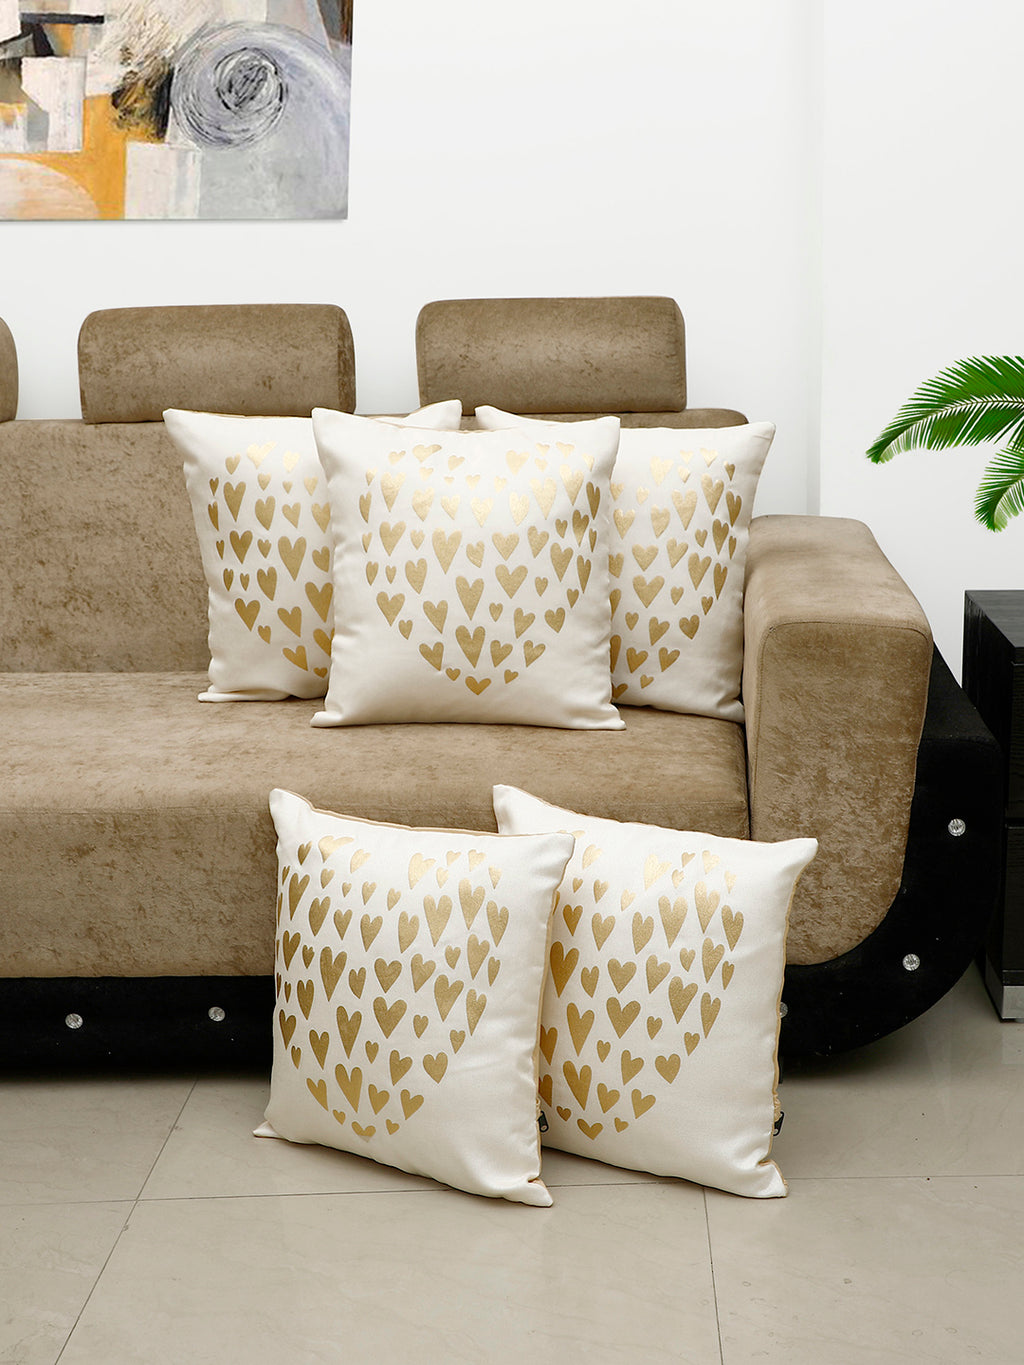 Detec™ Hosta Beige Golden Heart Printed 16 x 16 inches Cushion Cover (Set of 5 )